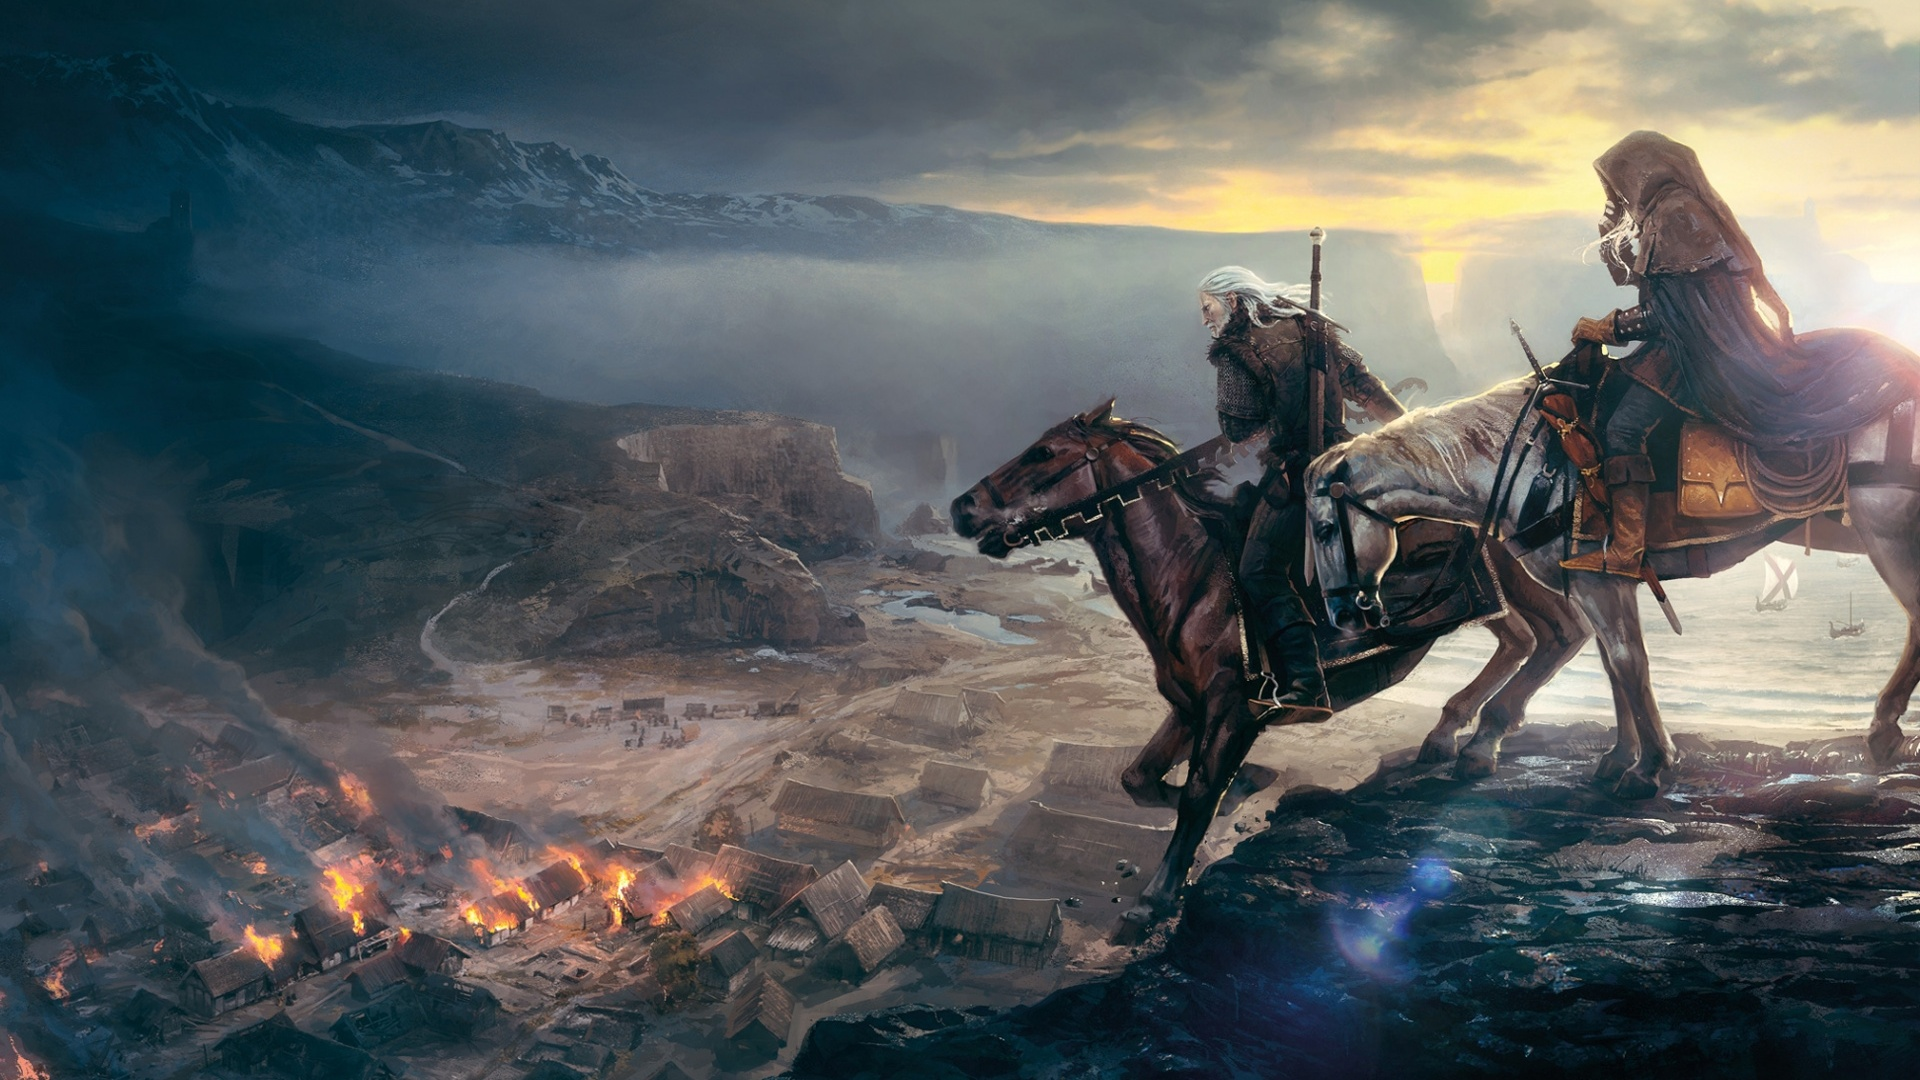 The Witcher 3 1080 X 2160 Wallpaper: Wallpaper The Witcher 3: Wild Hunt 2013 1920x1200 HD